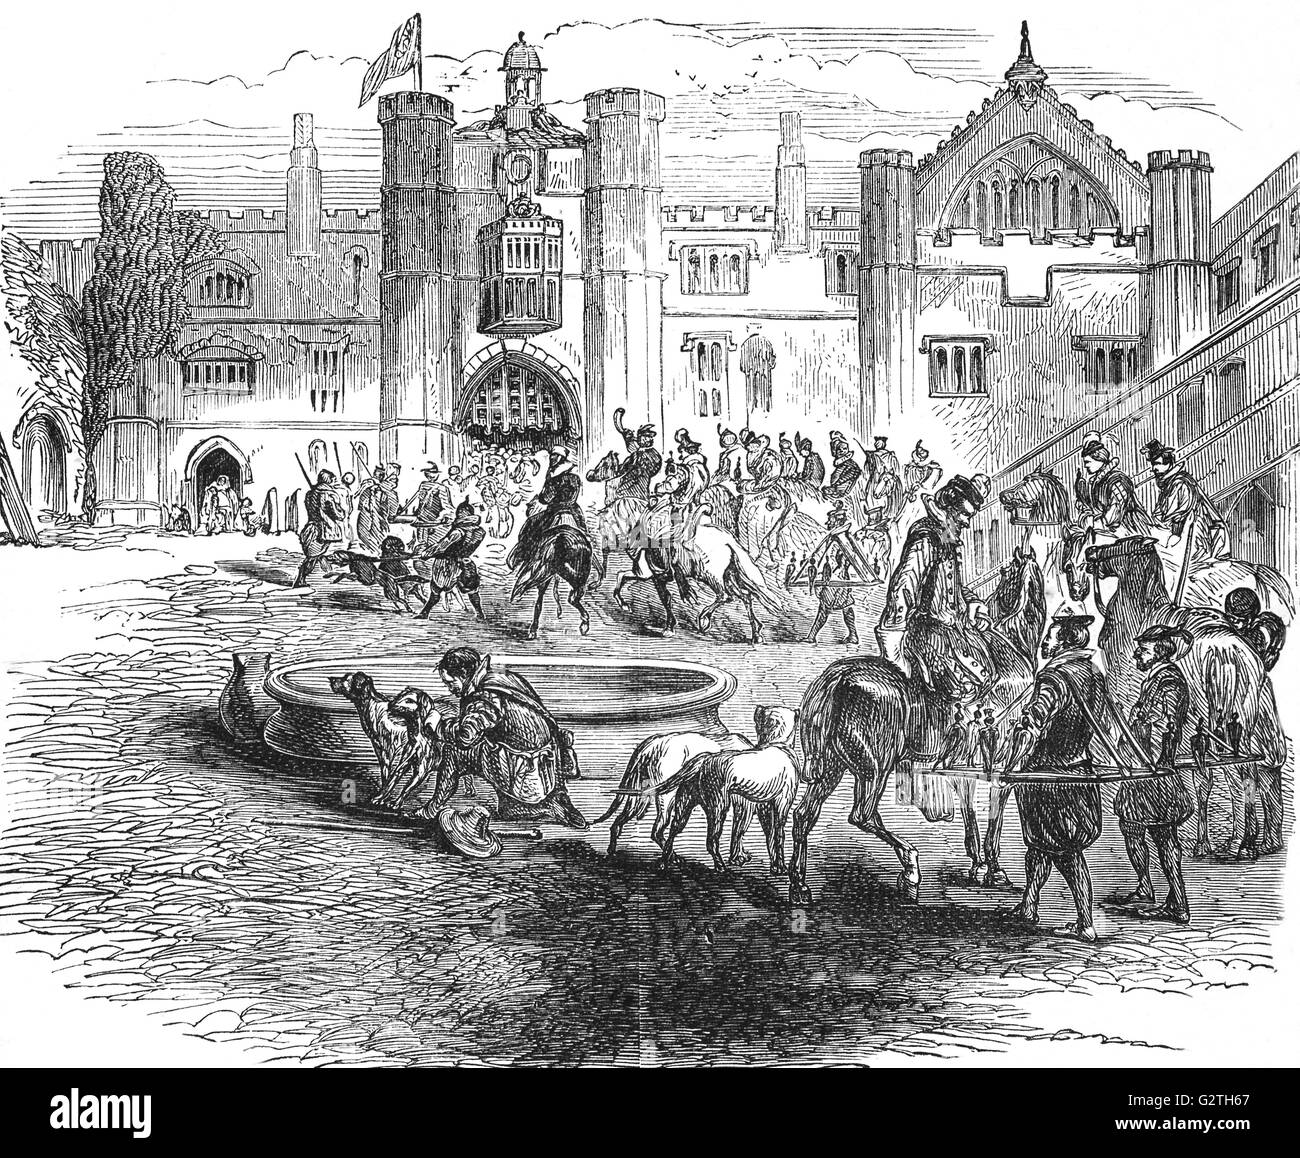 James I, King of England and Ireland and his courtiers setting out on a hunt. - Stock Image